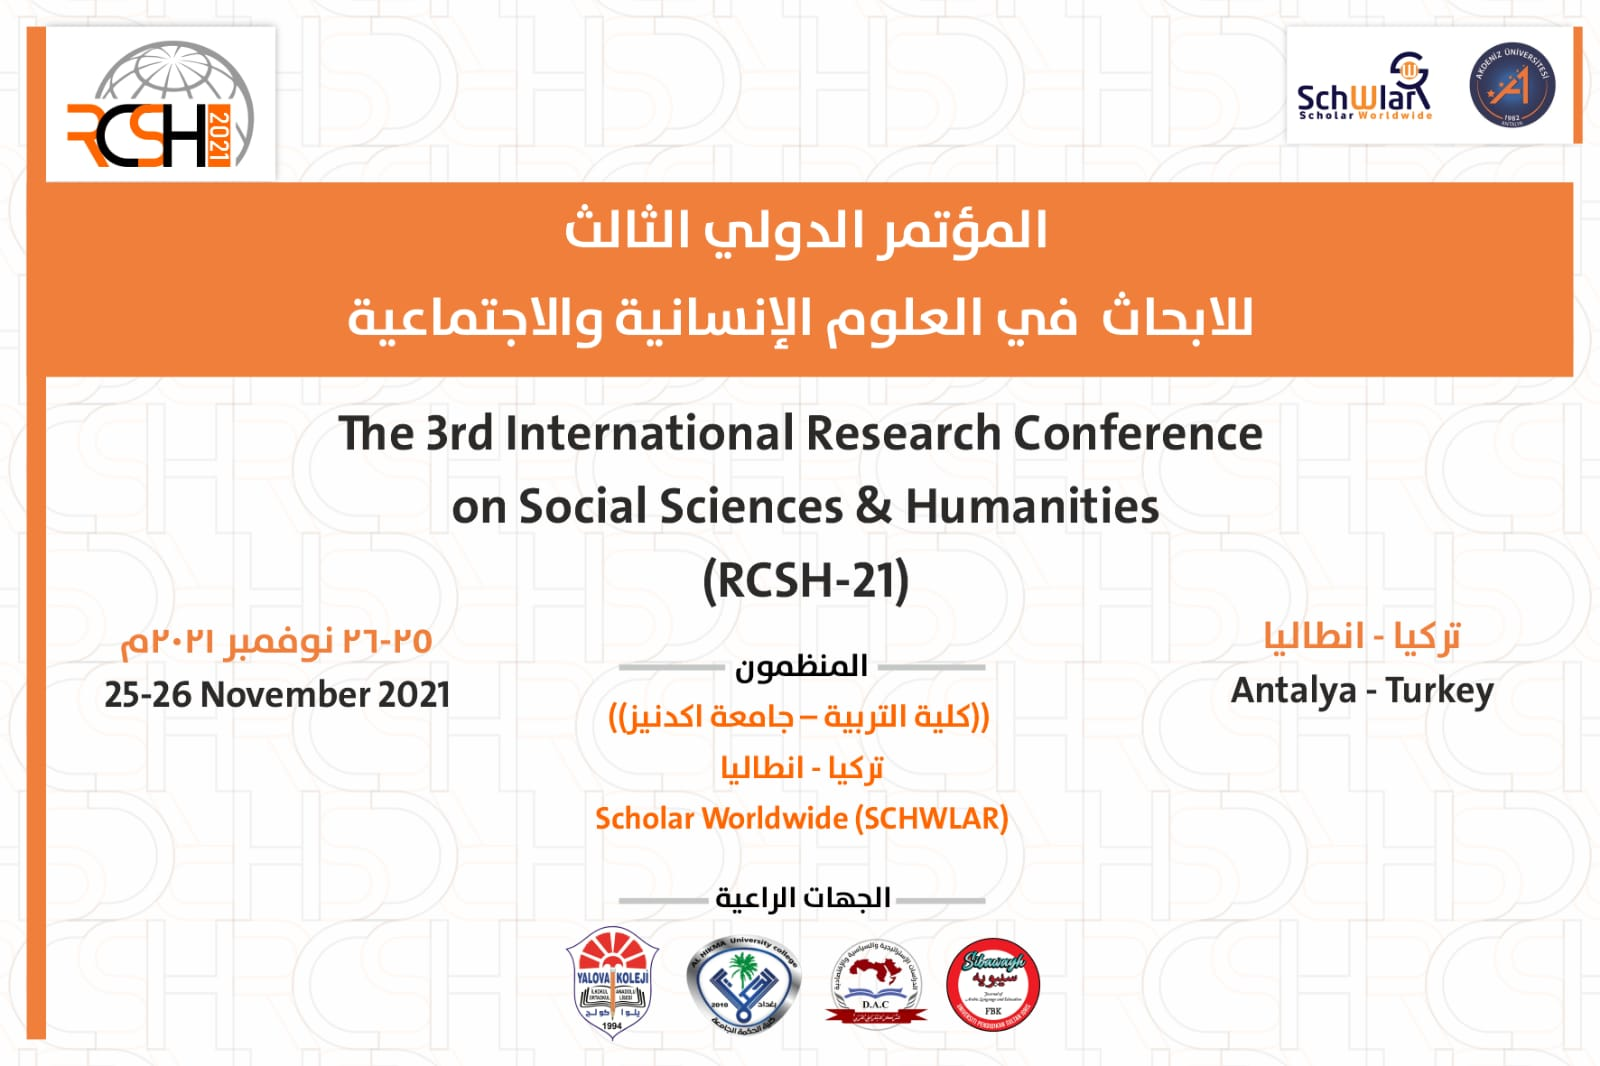 The 3rd International Research Conference on Social Sciences & Humanities (RCSH-21)